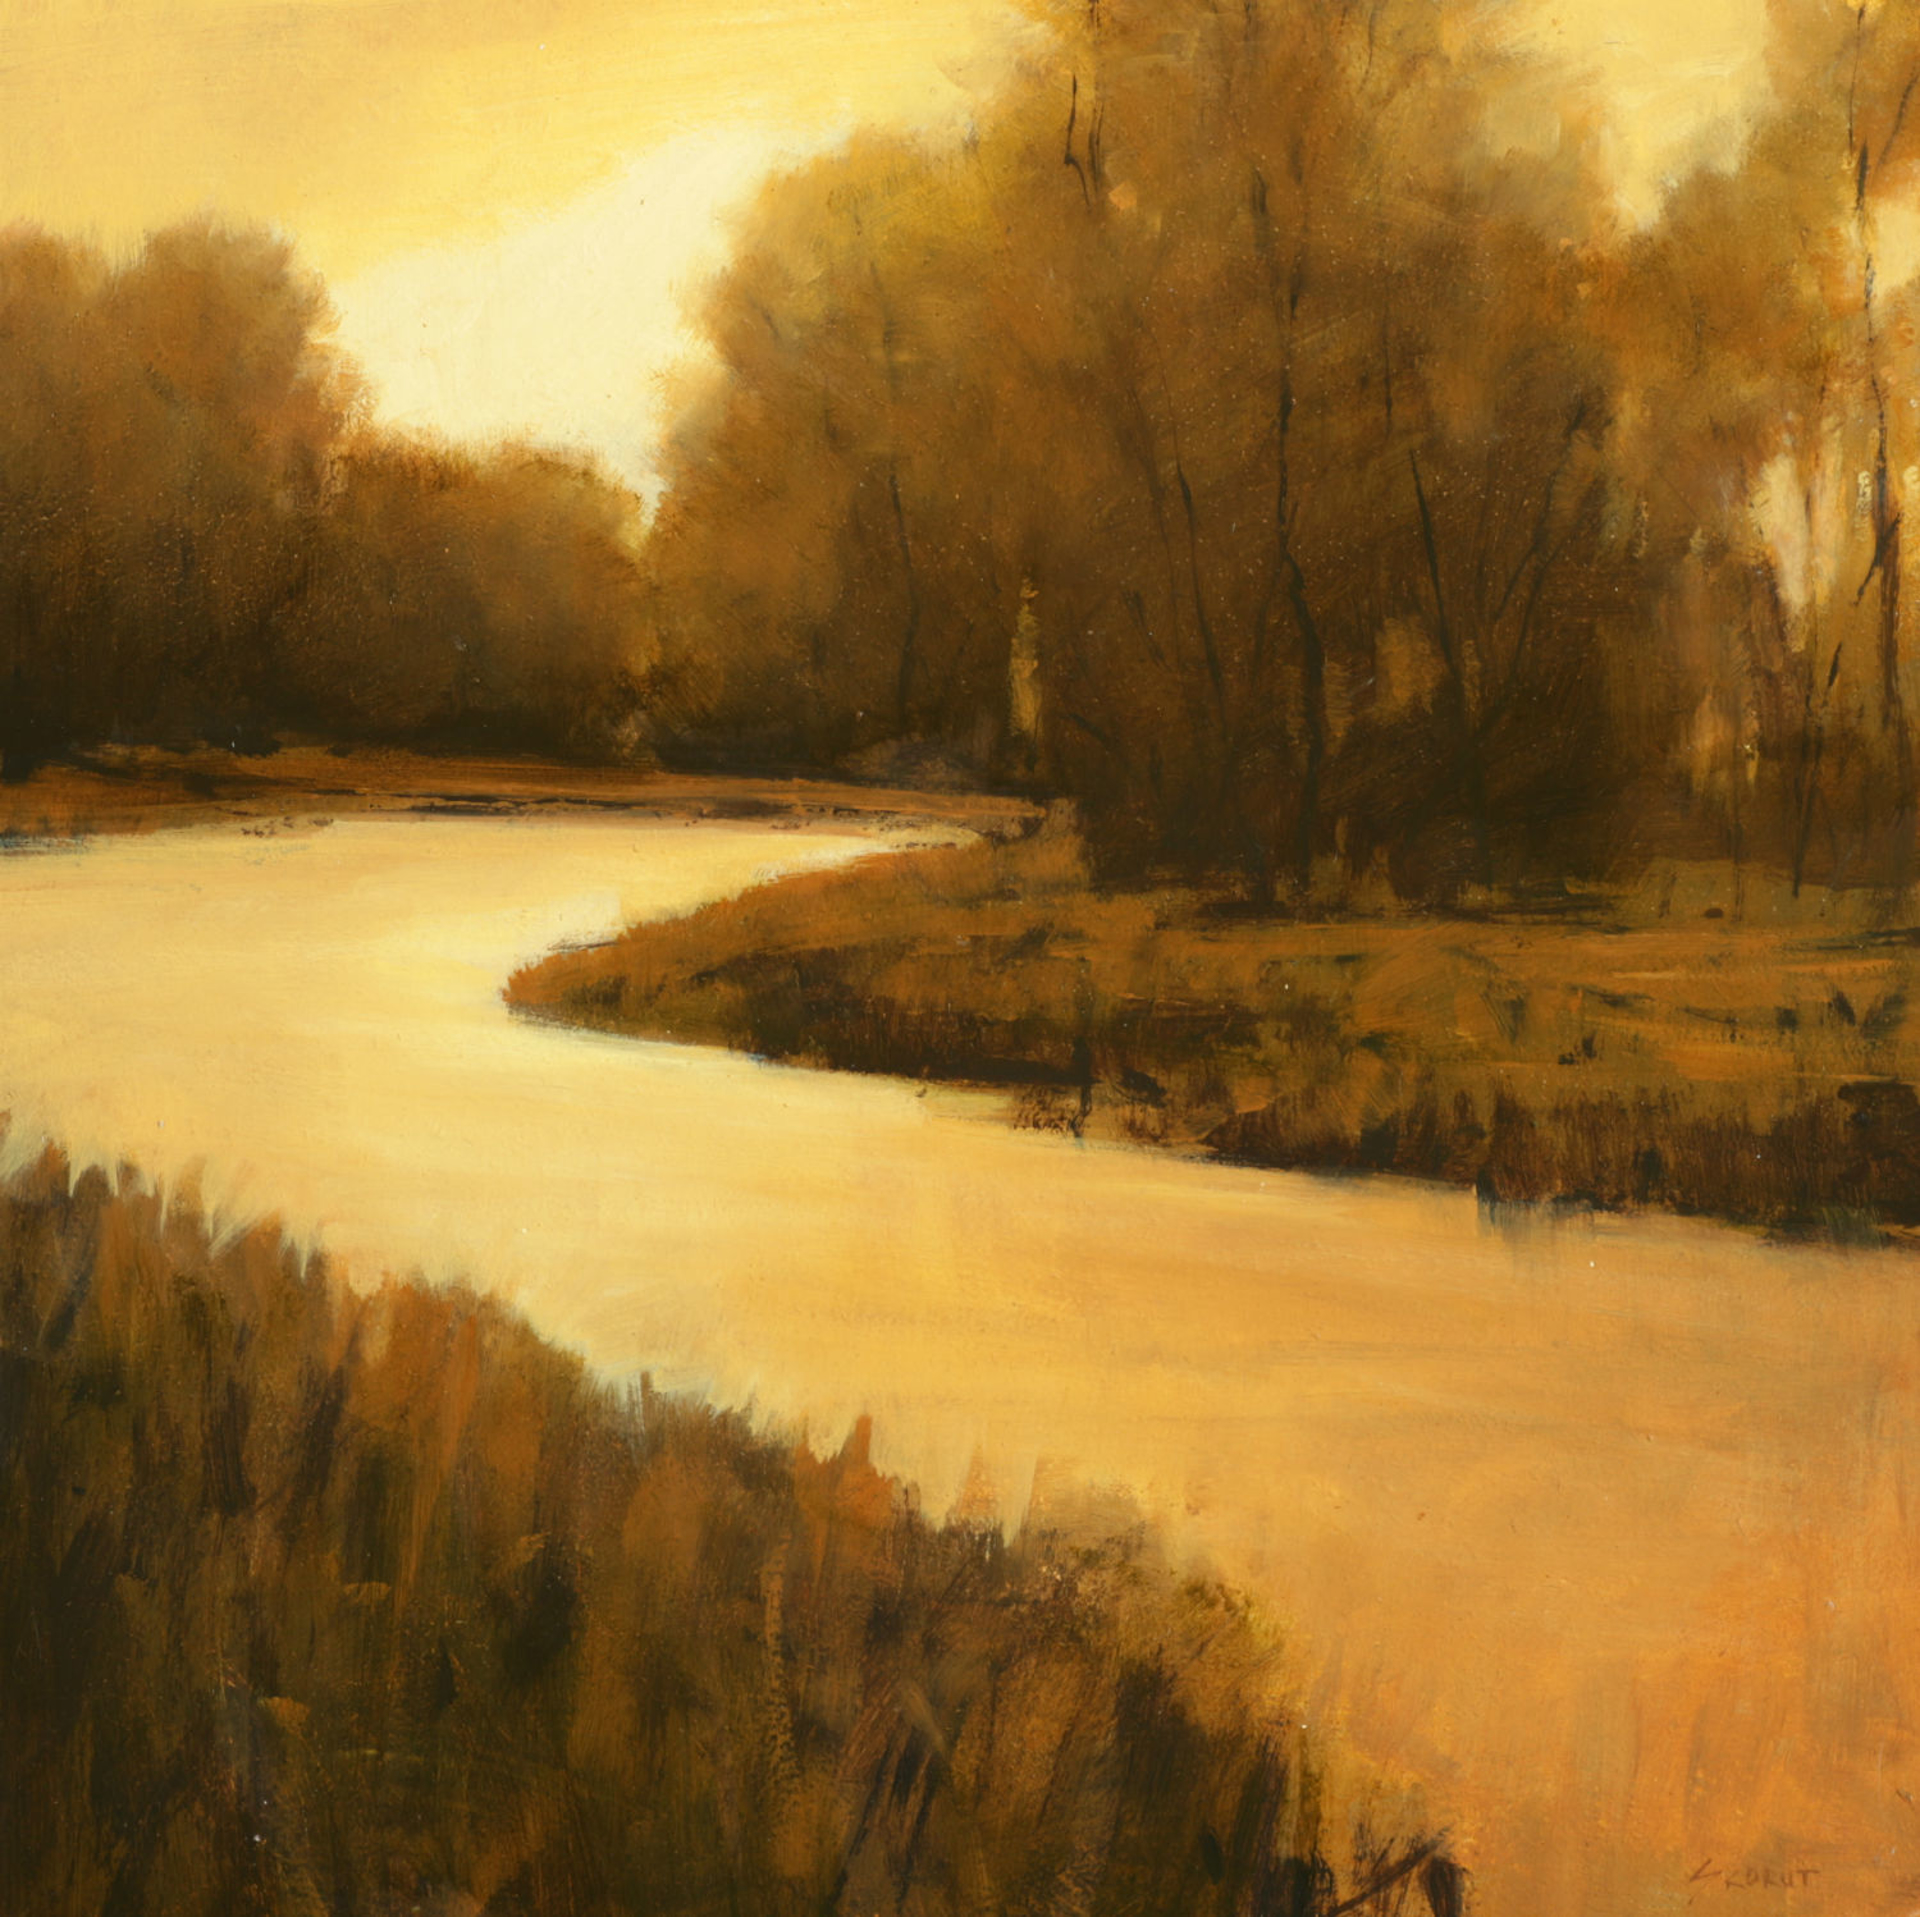 Bend of the River by Andrzej Skorut